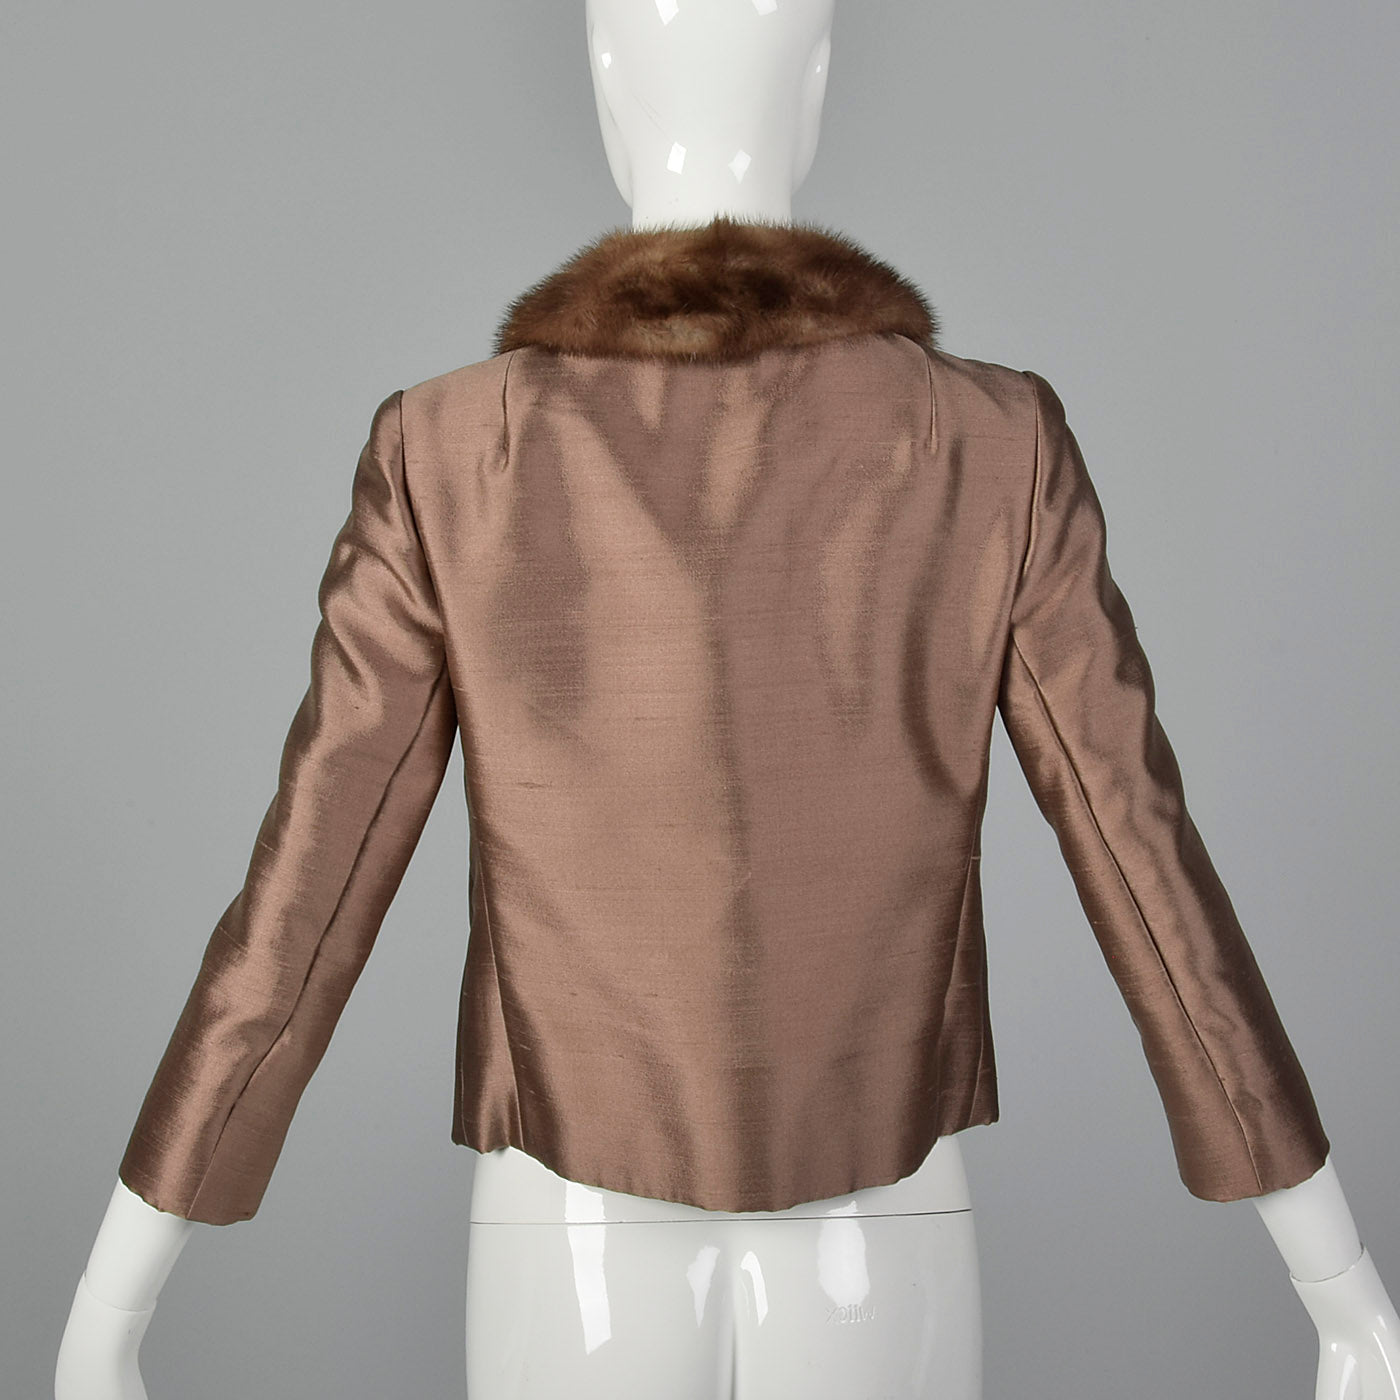 1960s Brown Silk Jacket with Fur Collar